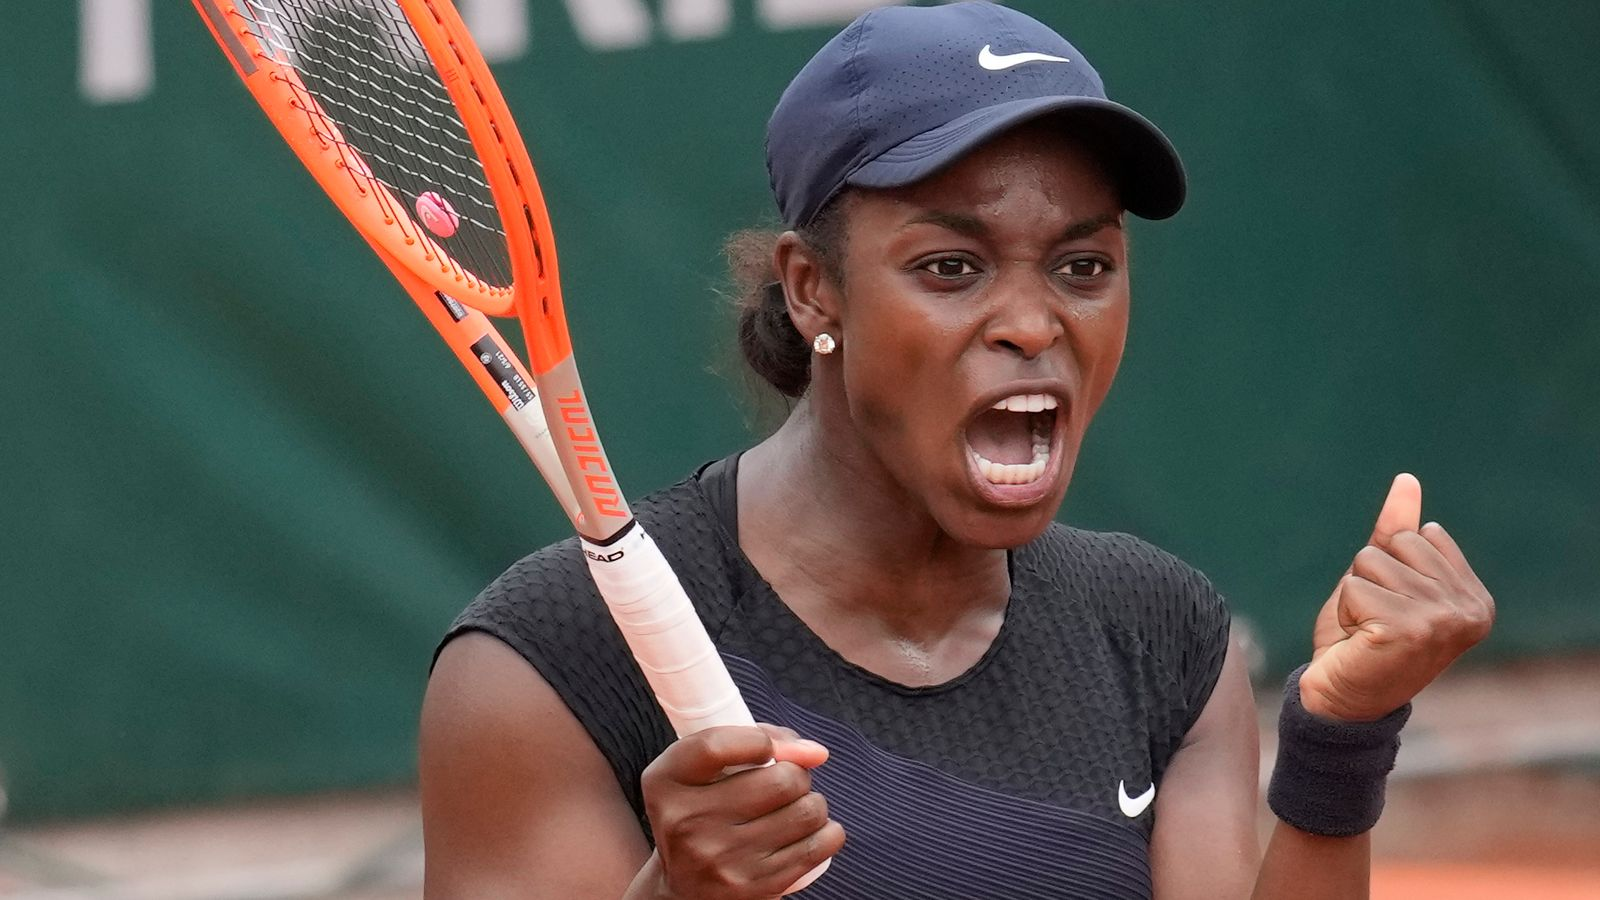 Sloane Stephens feels mental health has been neglected far too long on the tennis circuit